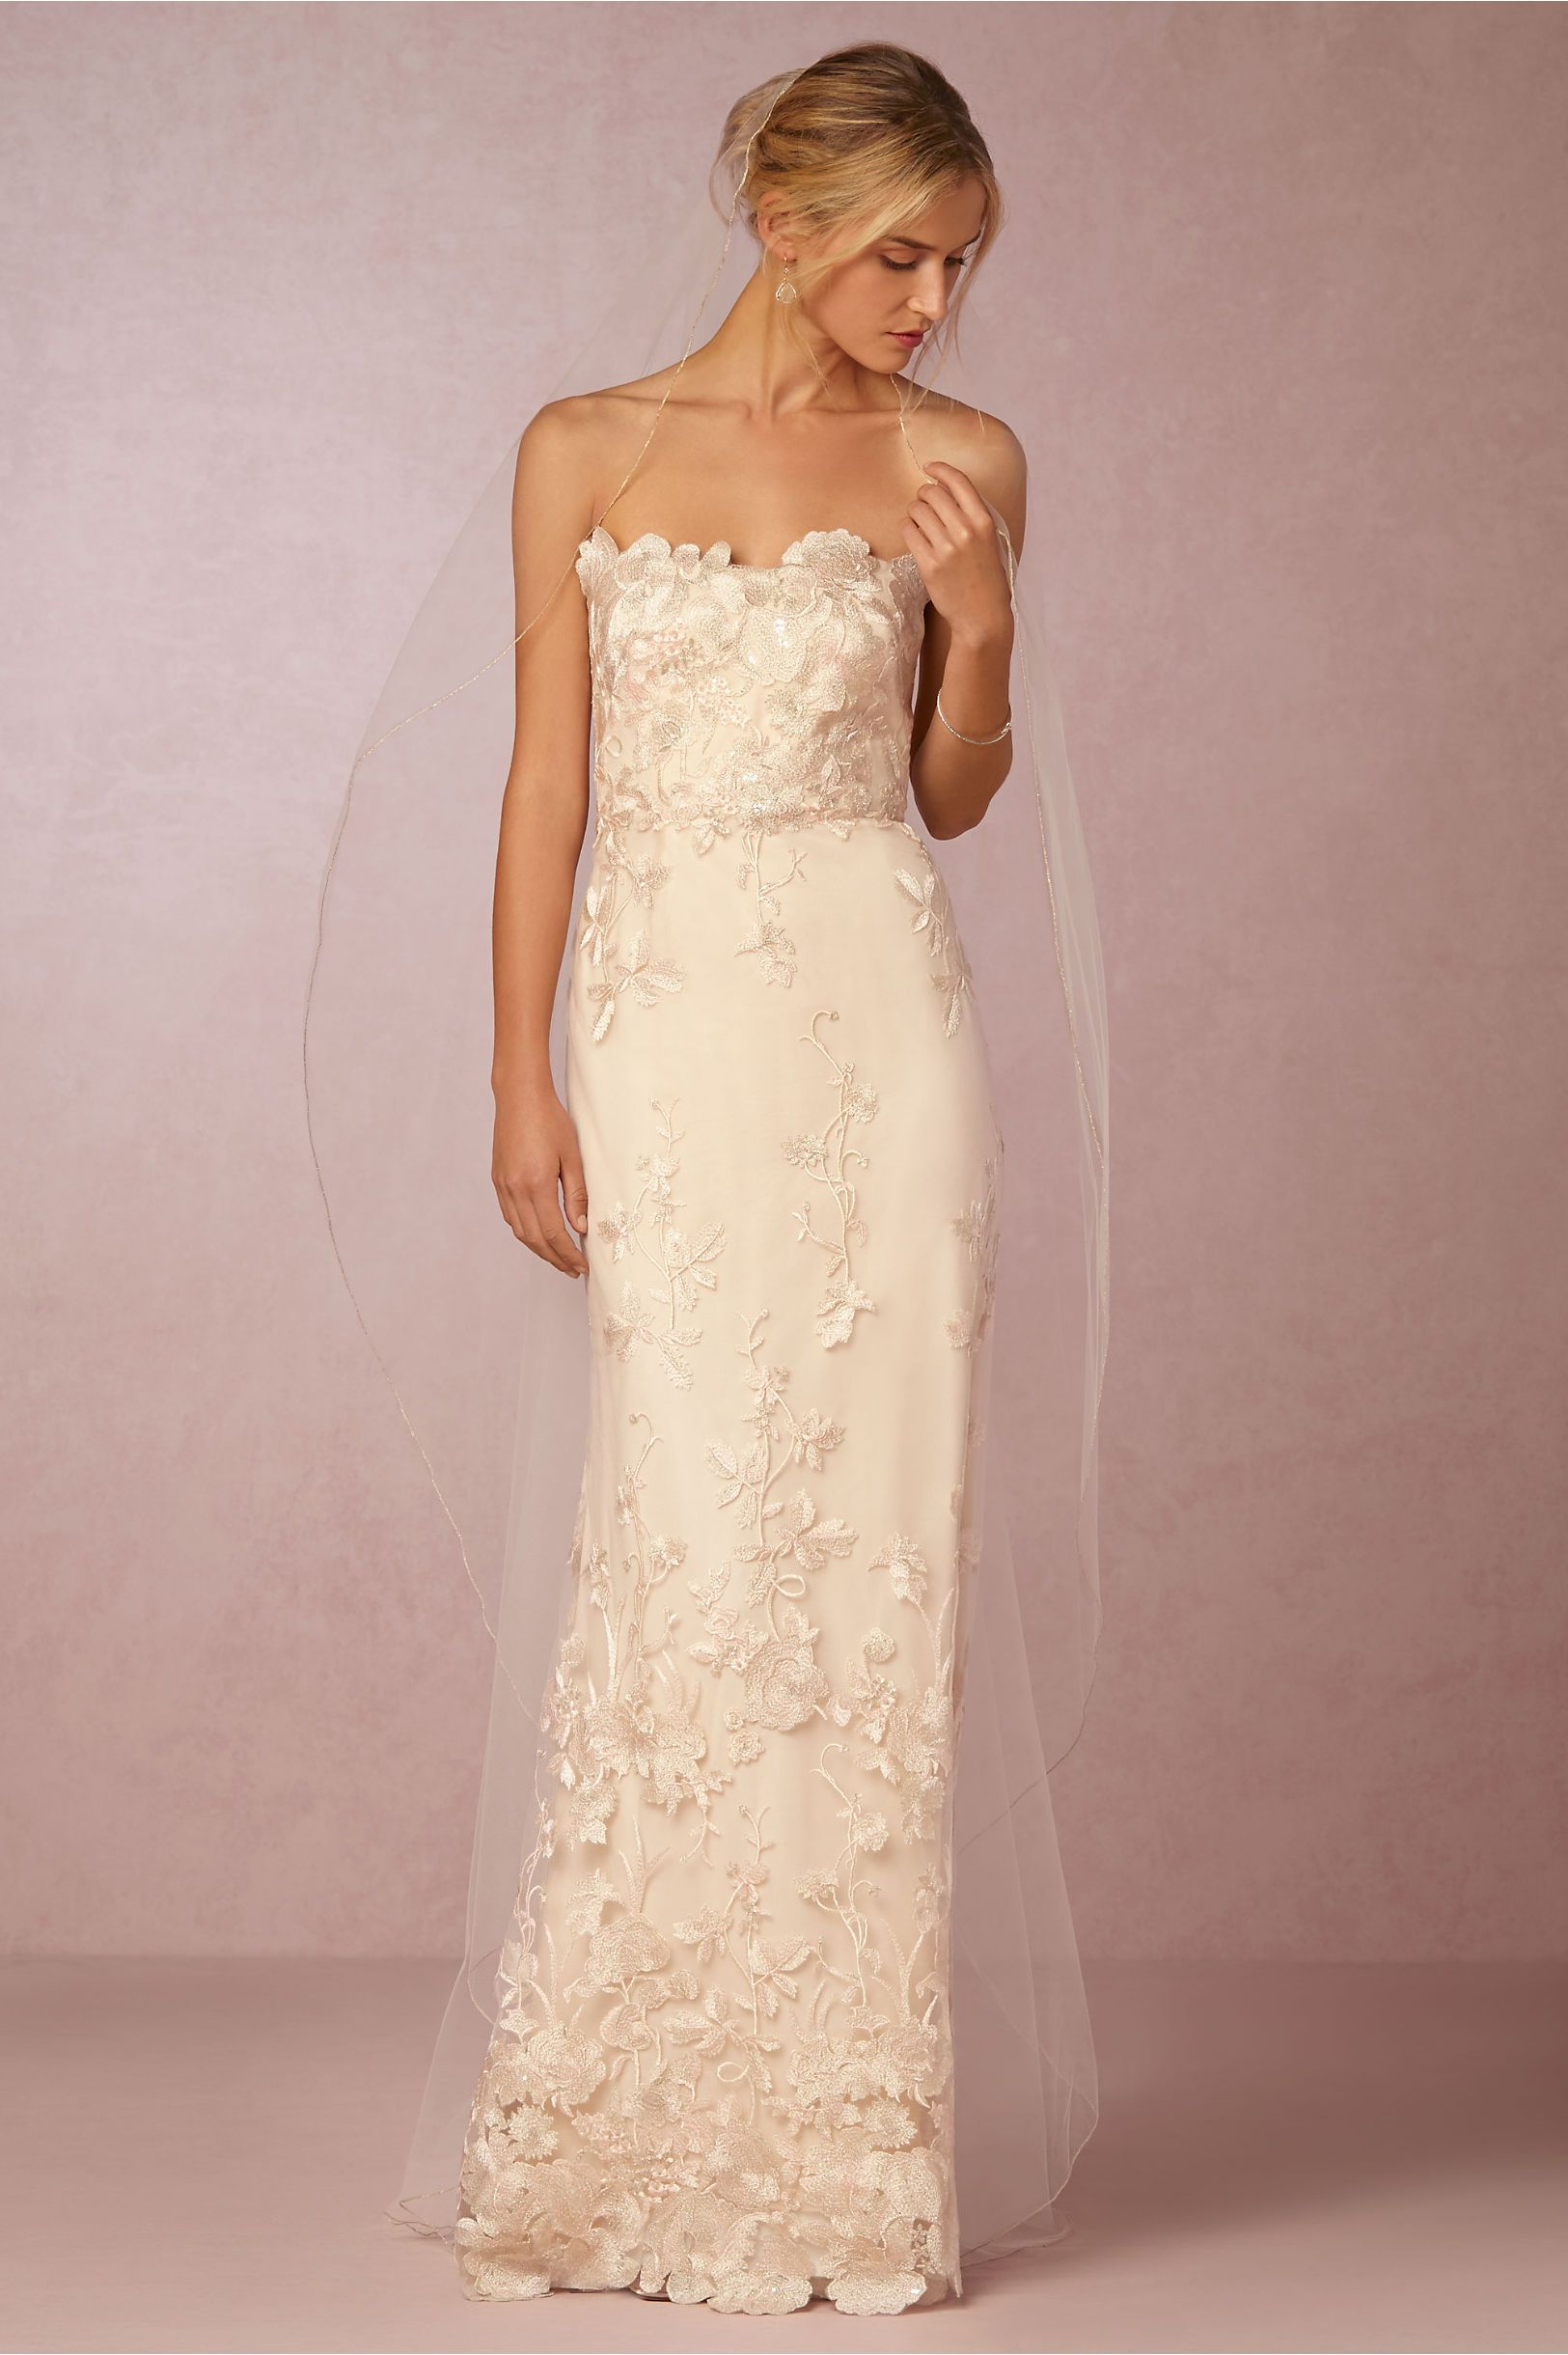 BHLDN Stardust Sky Veil Ivory in Shoes & Accessories | BHLDN ...